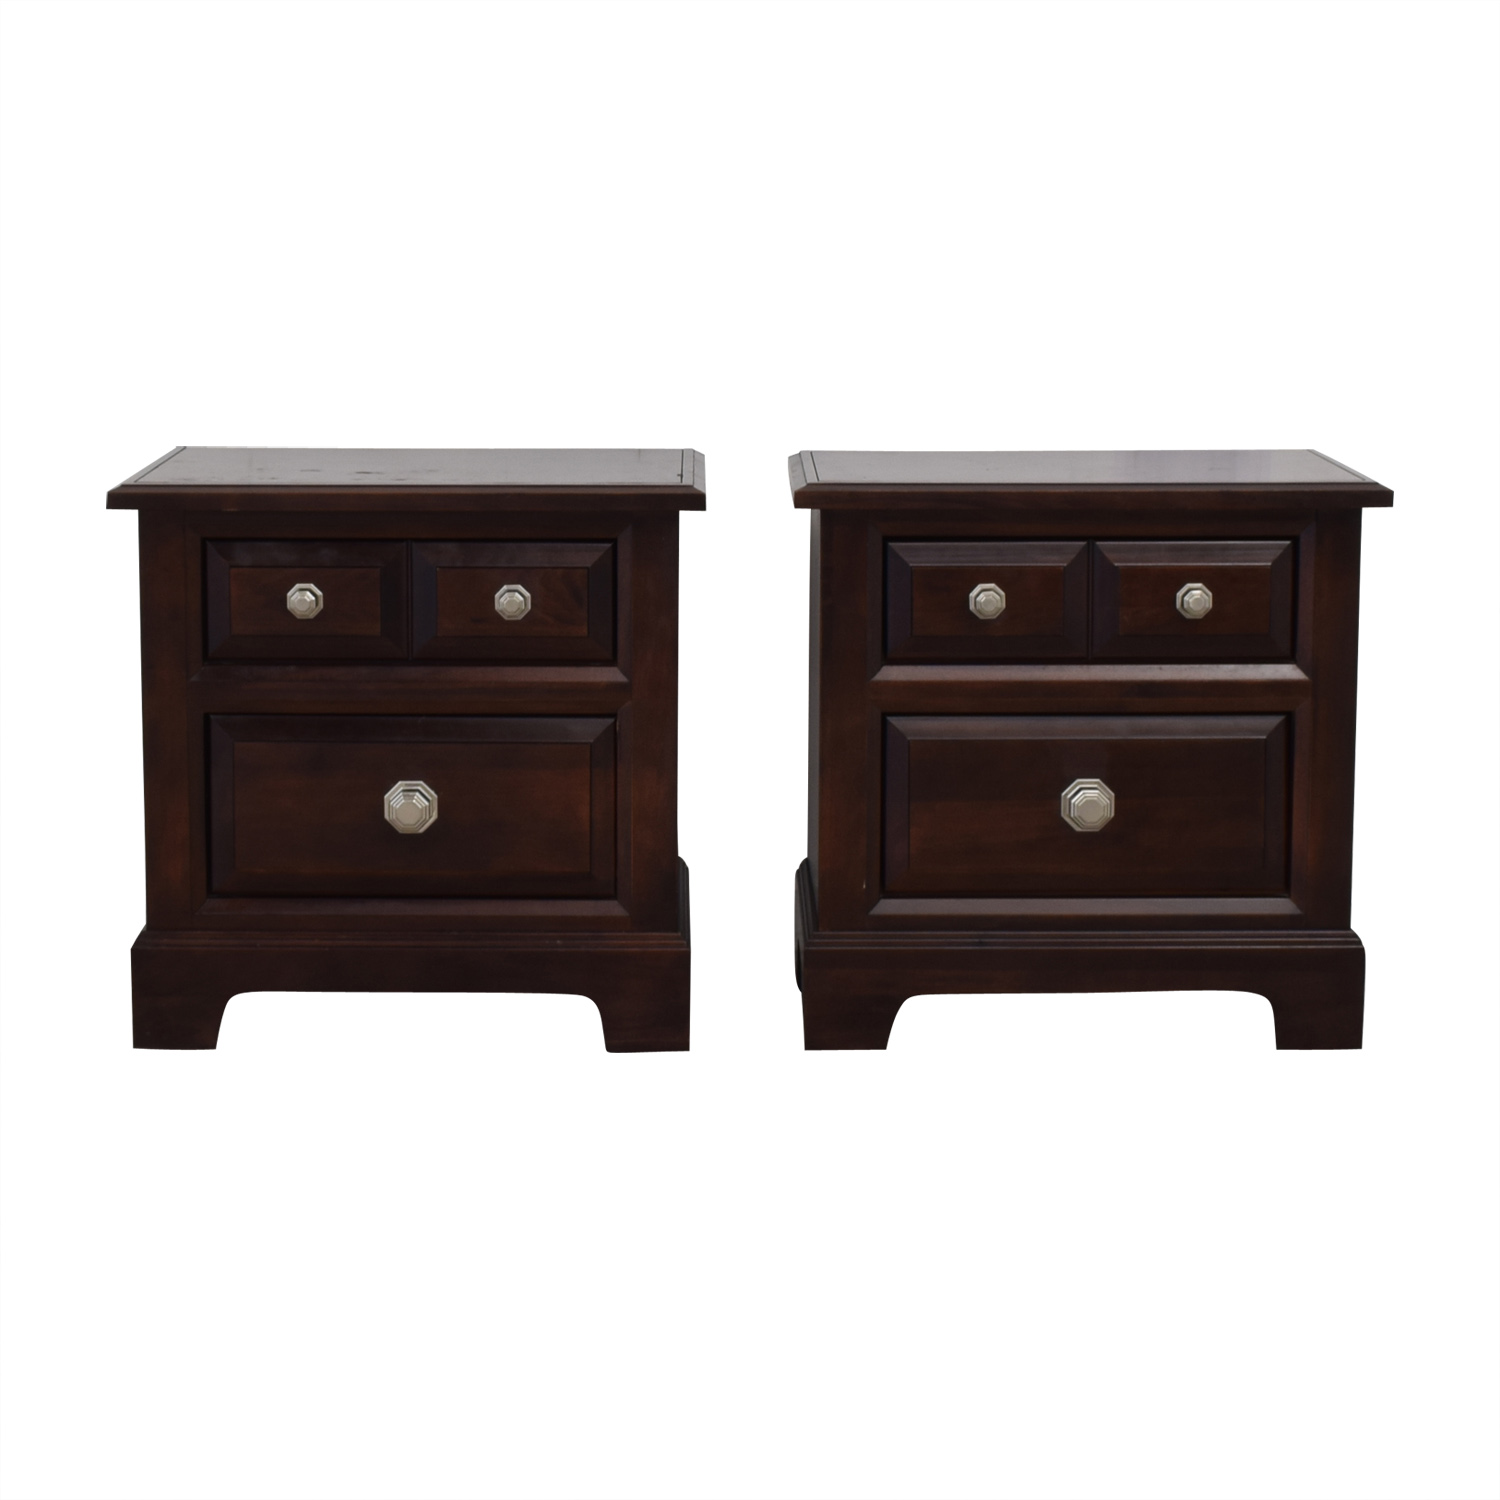 Vaughan-Bassett Two Drawer Night Stands sale